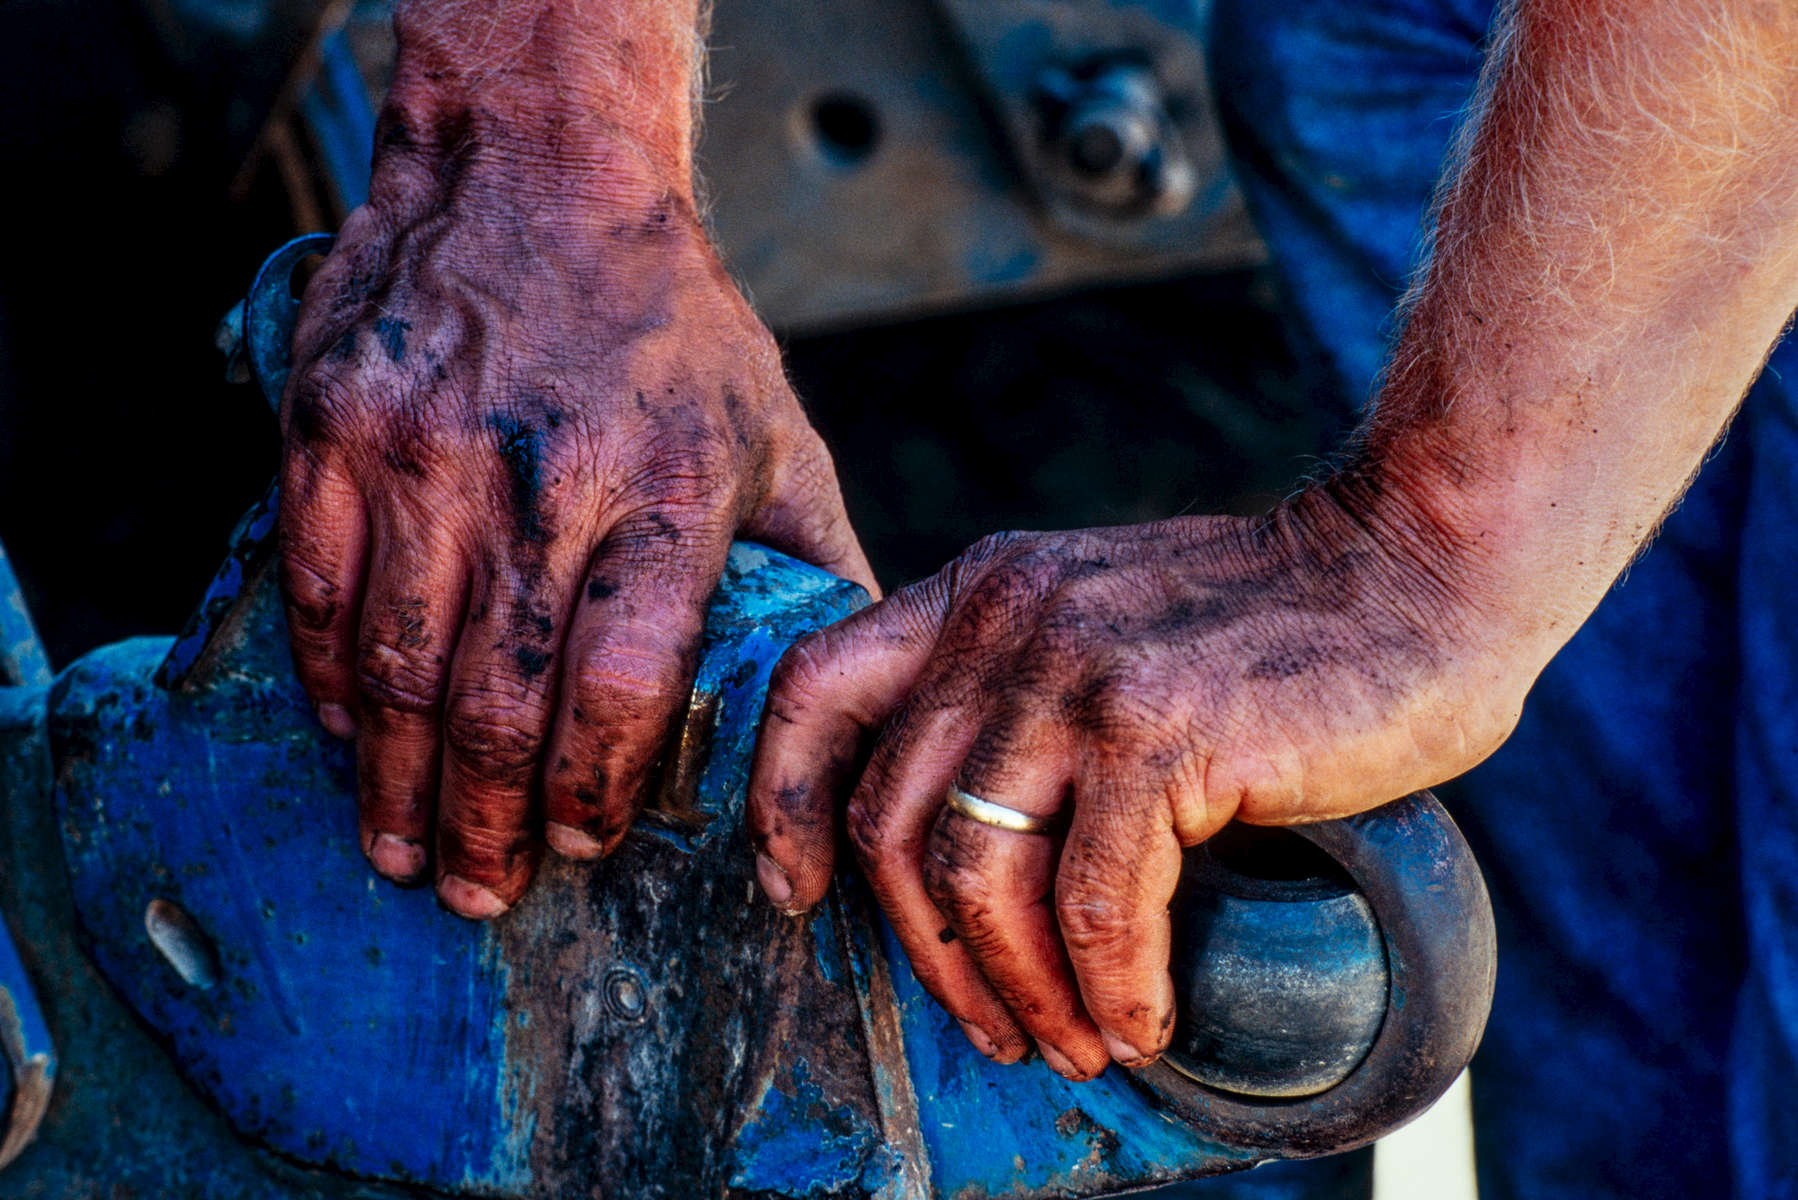 A horizontal picture of a man's dirty and grease covered hands resting on a worn blue tractor part called a 3-point draft link hitch as he takes a break from working on his farm equipment.